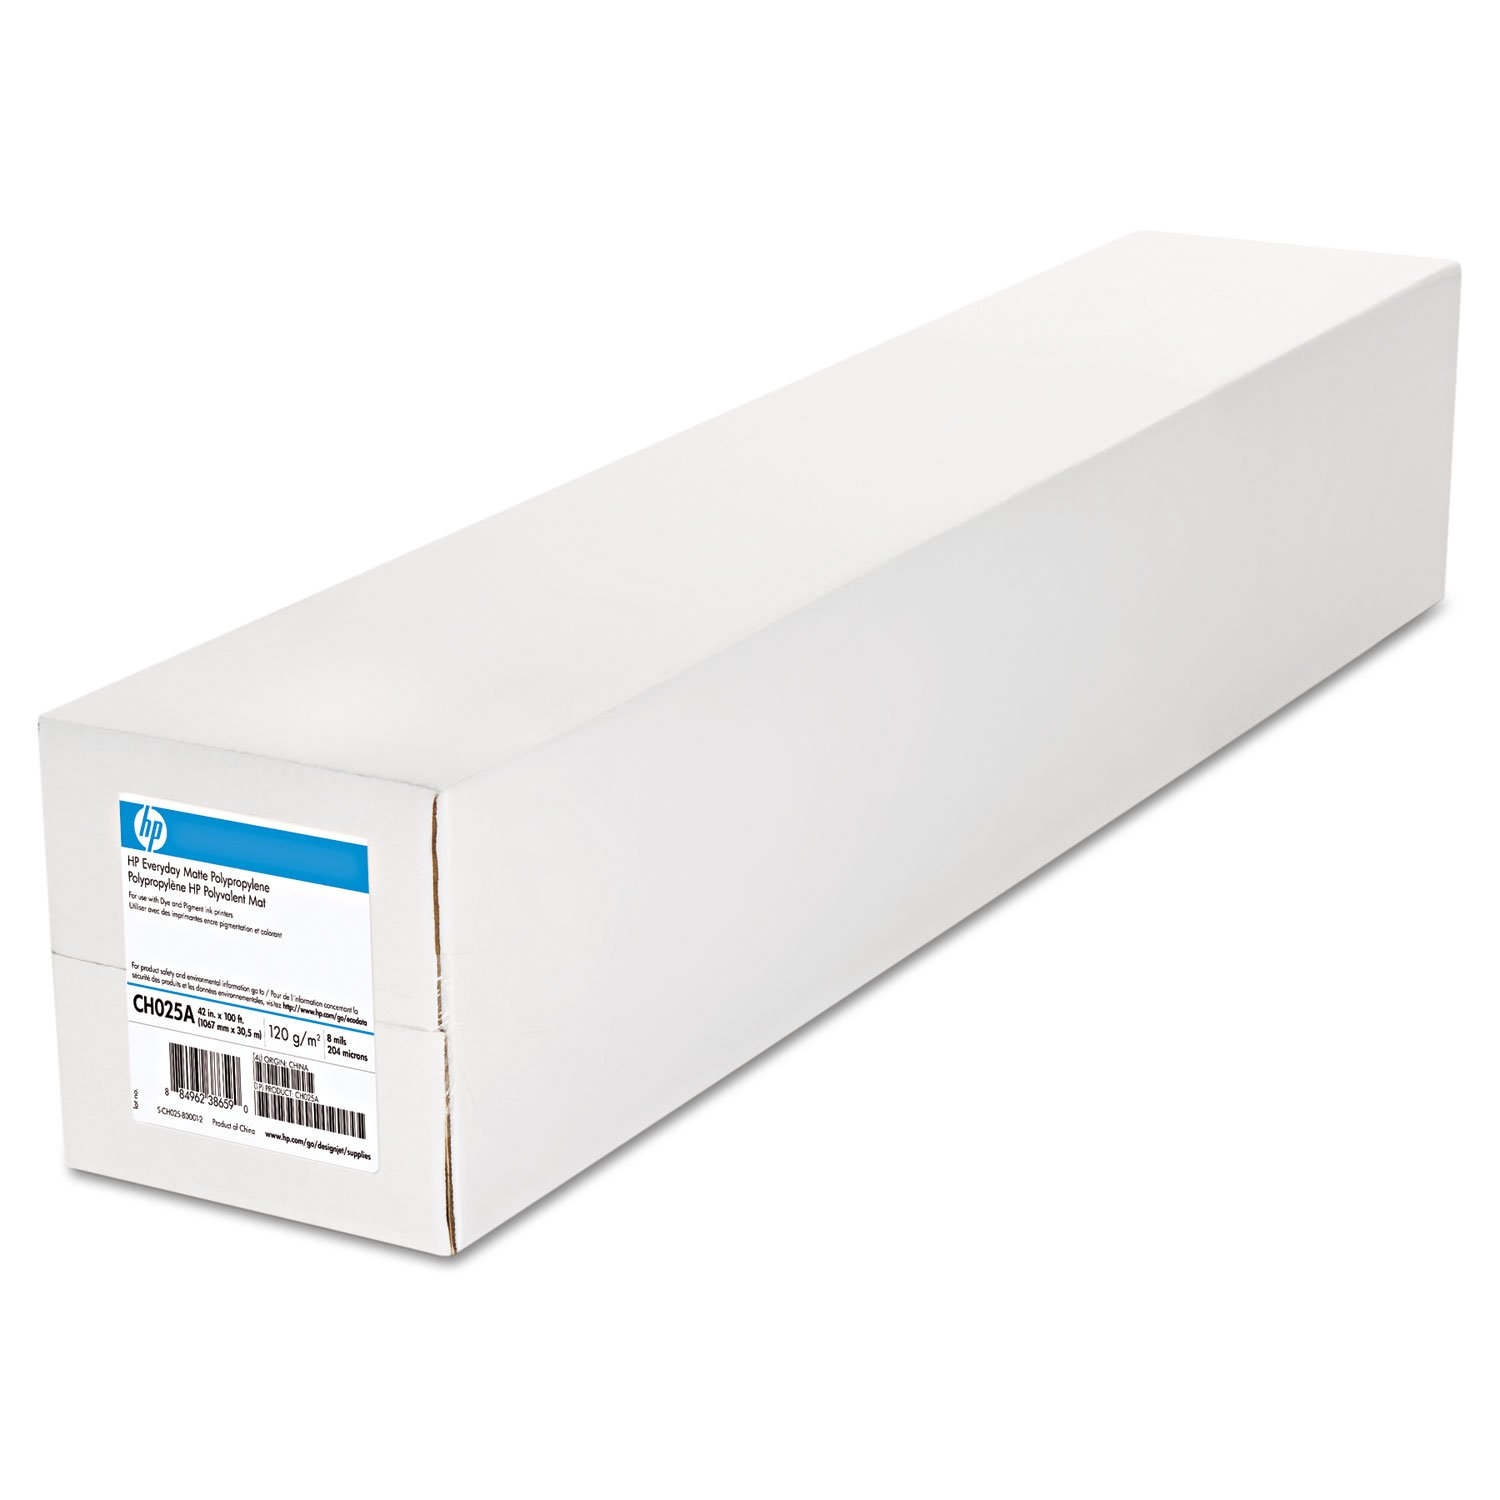 HP CH025A Everyday Matte Polypropylene Roll Film, 120 g/m2, 2 in. Core, 42 in. x 100 ft, White (2 rolls/carton)